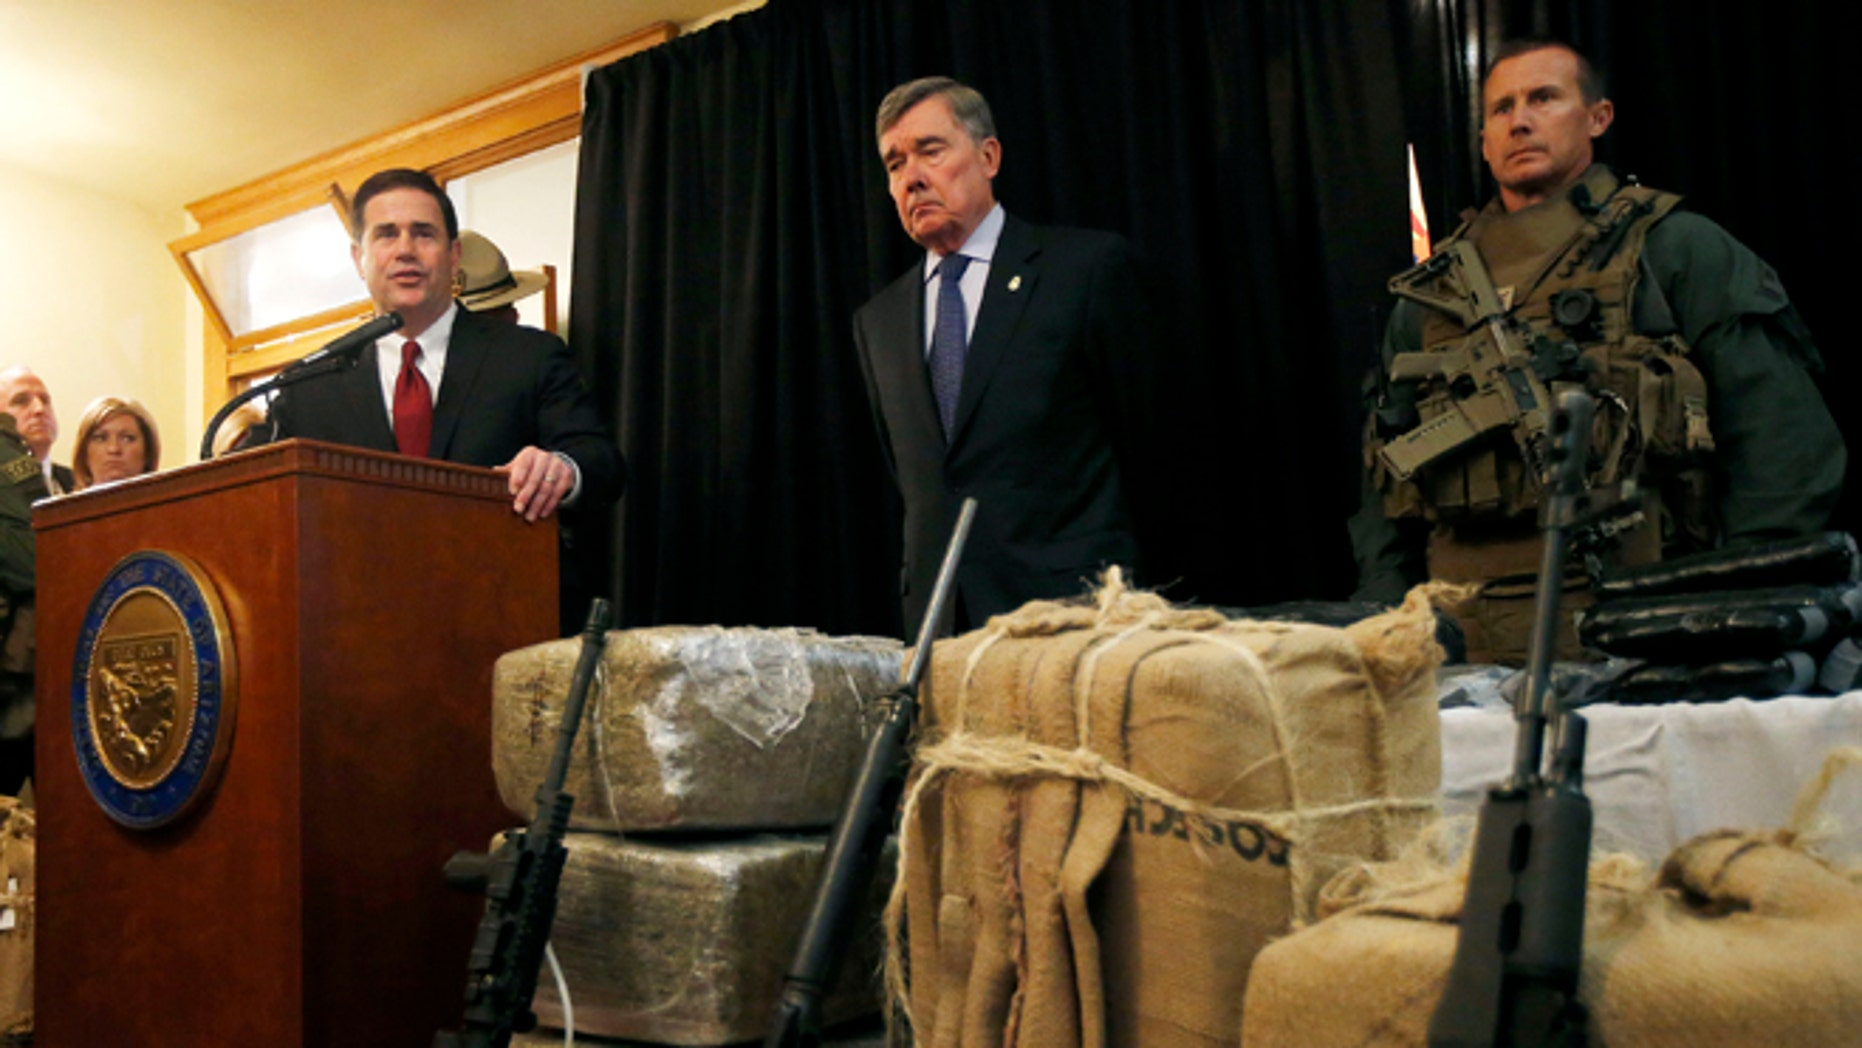 With seized drugs and weapons from border-crossing drug smugglers, Arizona Gov. Doug Ducey, left, speaks at a news conference after testifying at a field hearing of the U.S. Senate Homeland Security and Governmental Affairs Committee at the Arizona Capitol Monday, Nov. 23, 2015, in Phoenix.  R. Gil Kerlikowske, center, commissioner of the U.S. Customs and Border Protection, listens in during the news conference. (AP Photo/Ross D. Franklin)